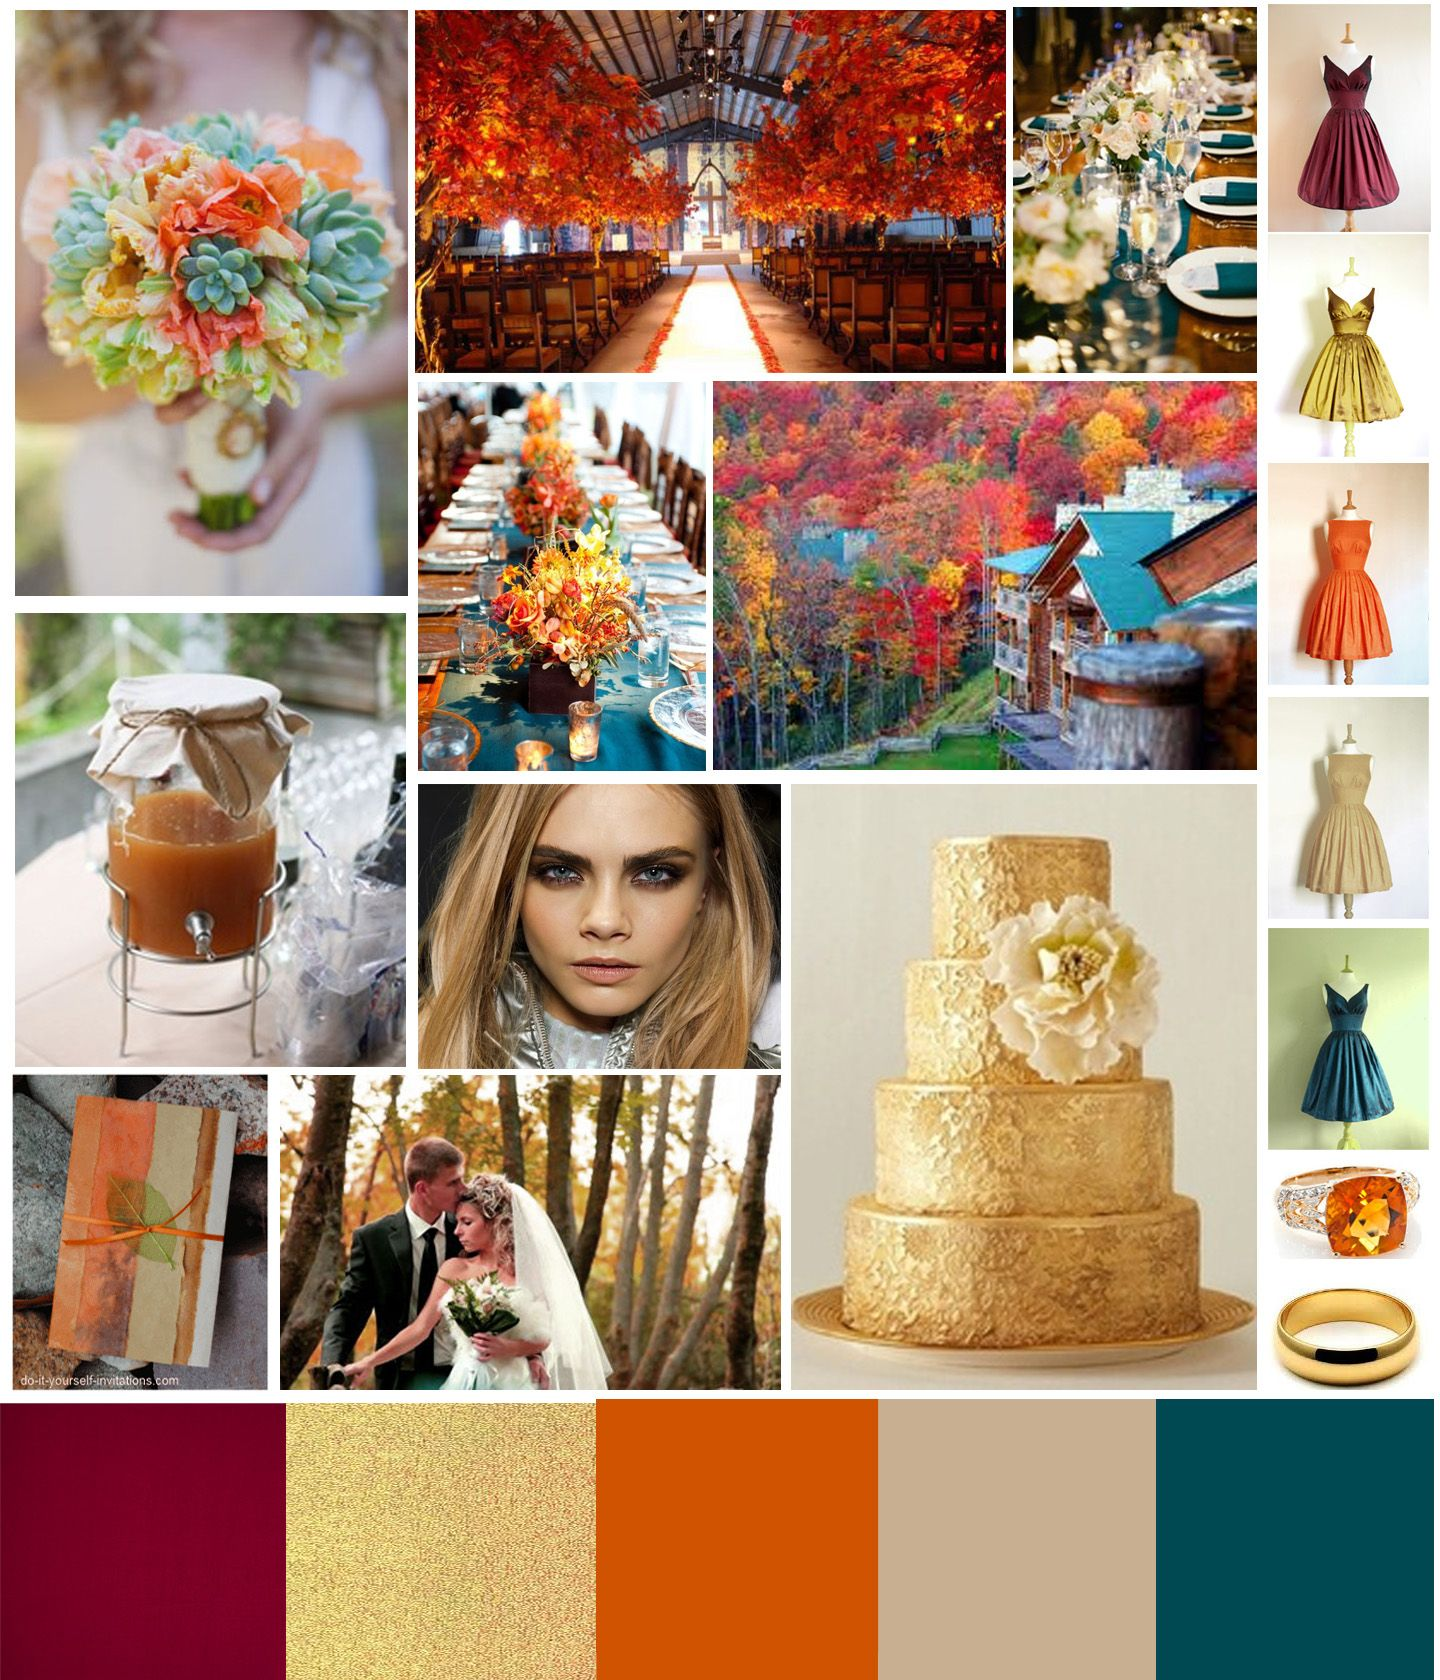 Fall Wedding Color Ideas: Unique Fall Color Scheme. Fall Shades Of Cranberry Red